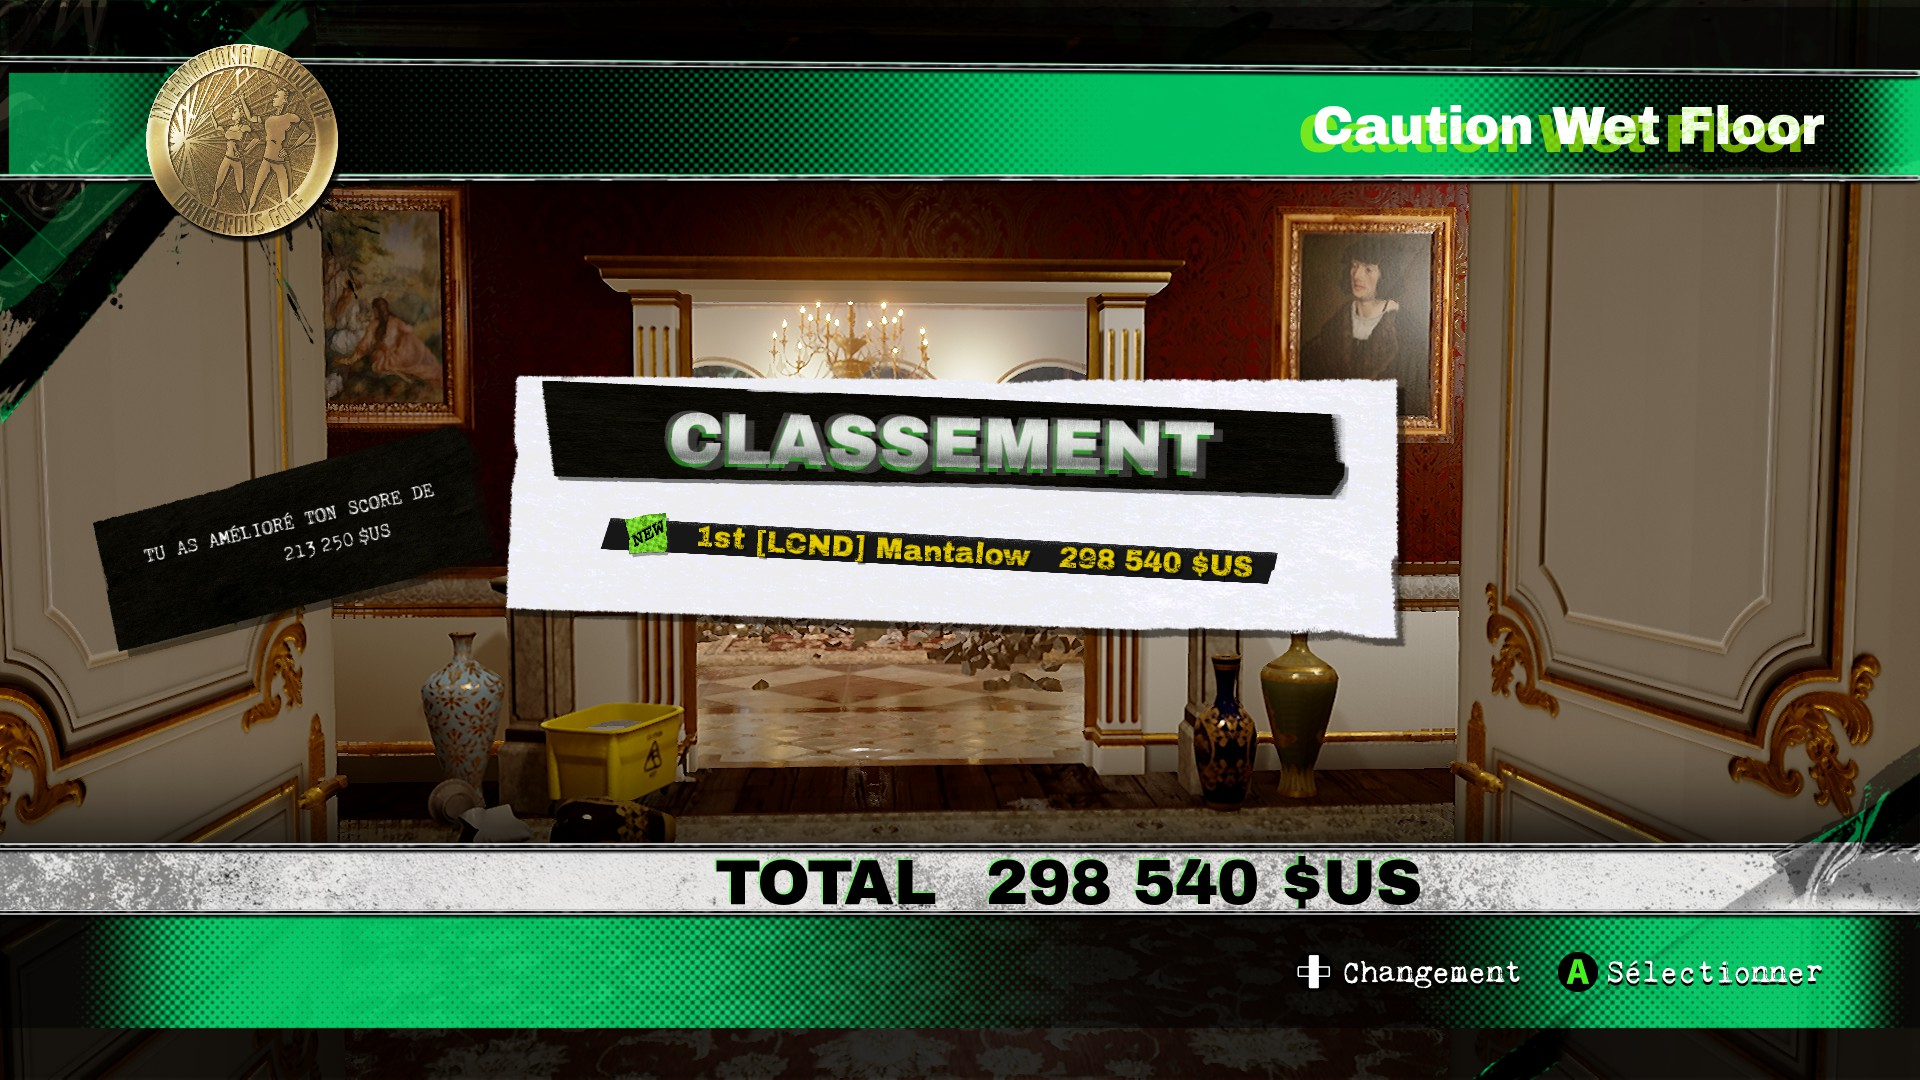 Dangerous Golf: France: Hall of Mirrors: Caution Wet Floor 298,540 points